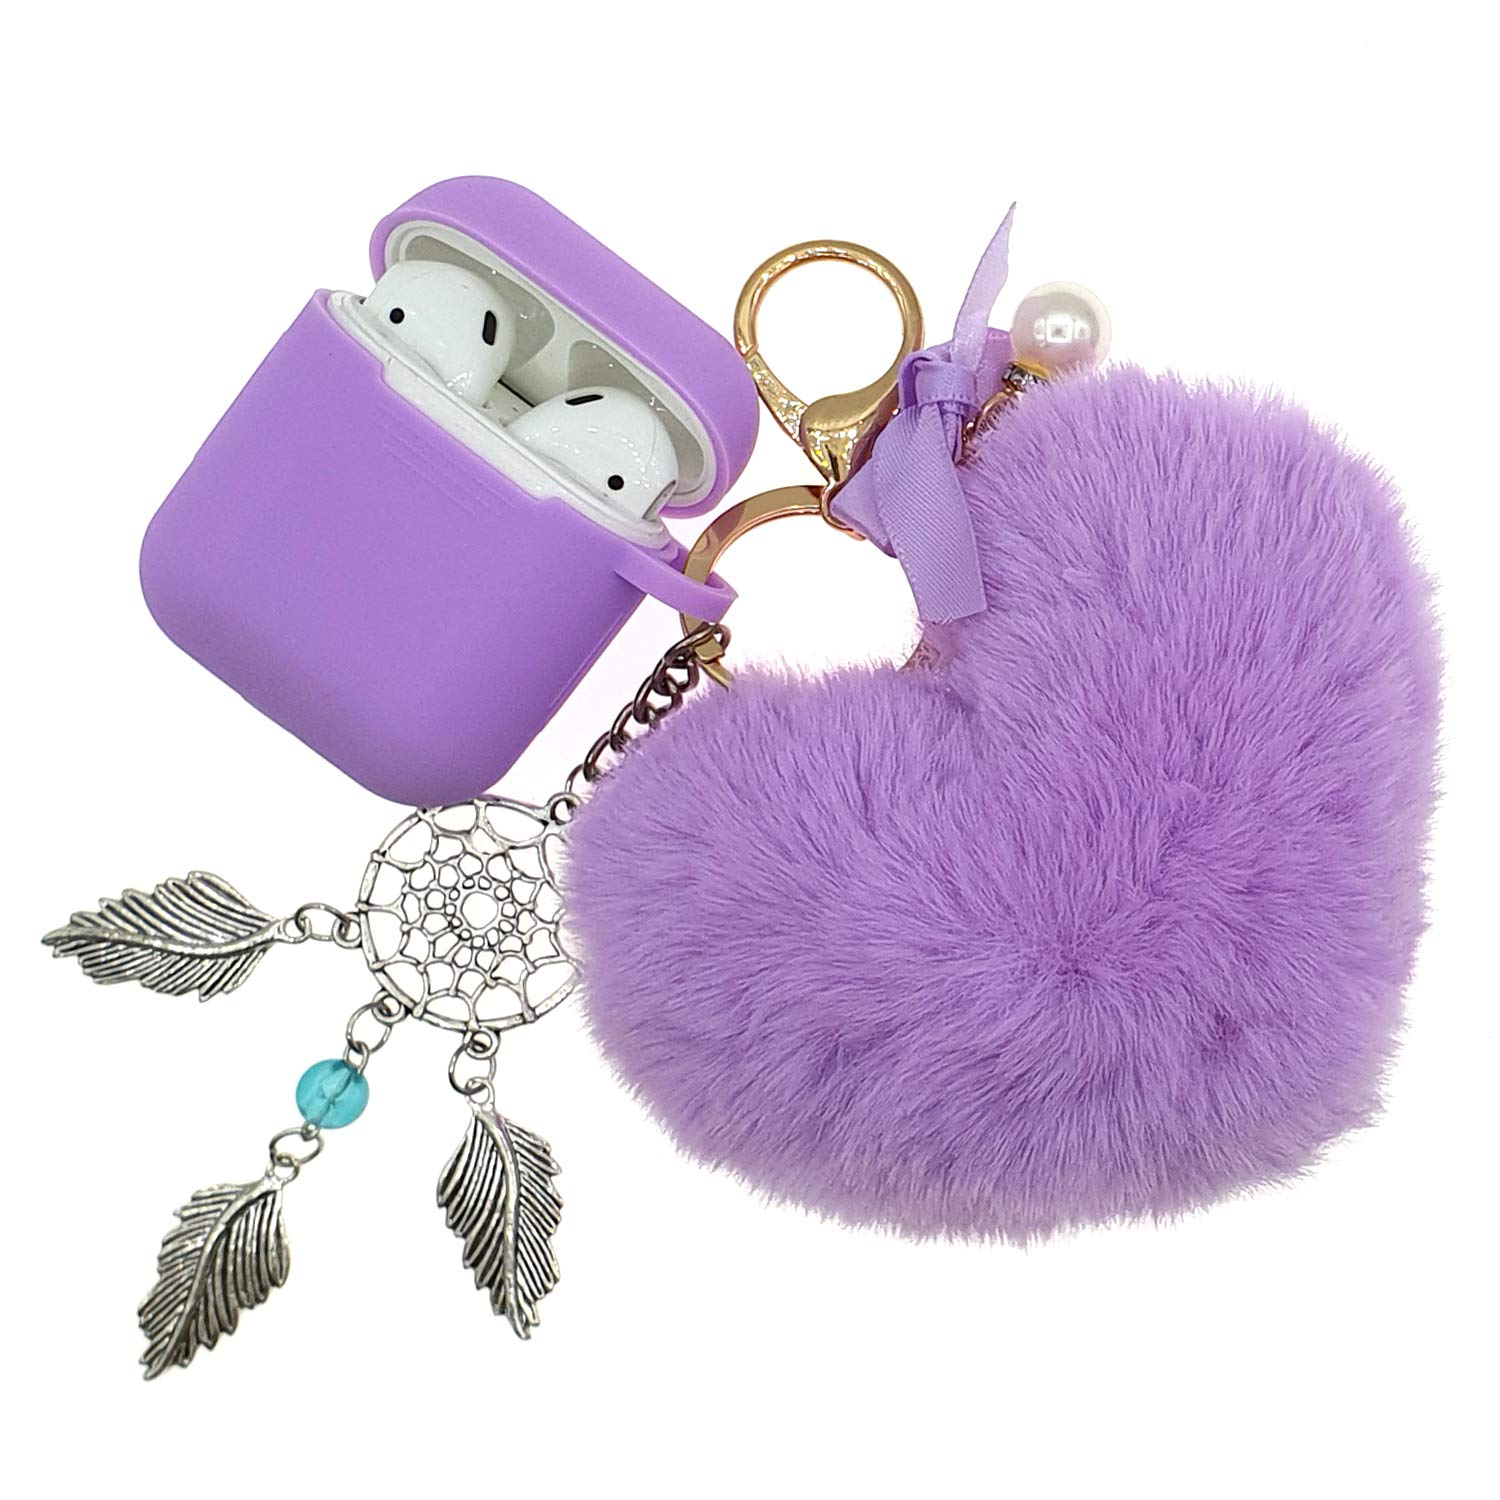 AirPods 2/1 Silicone Skin and Cover Case Adorable Anti-Loss Replacement for Apple Headphone Charging Case 2/1 Drop Proof Airpod Case with Elegant Fluffy Heart Shaped Fur Ball Dream Catchers Keychains